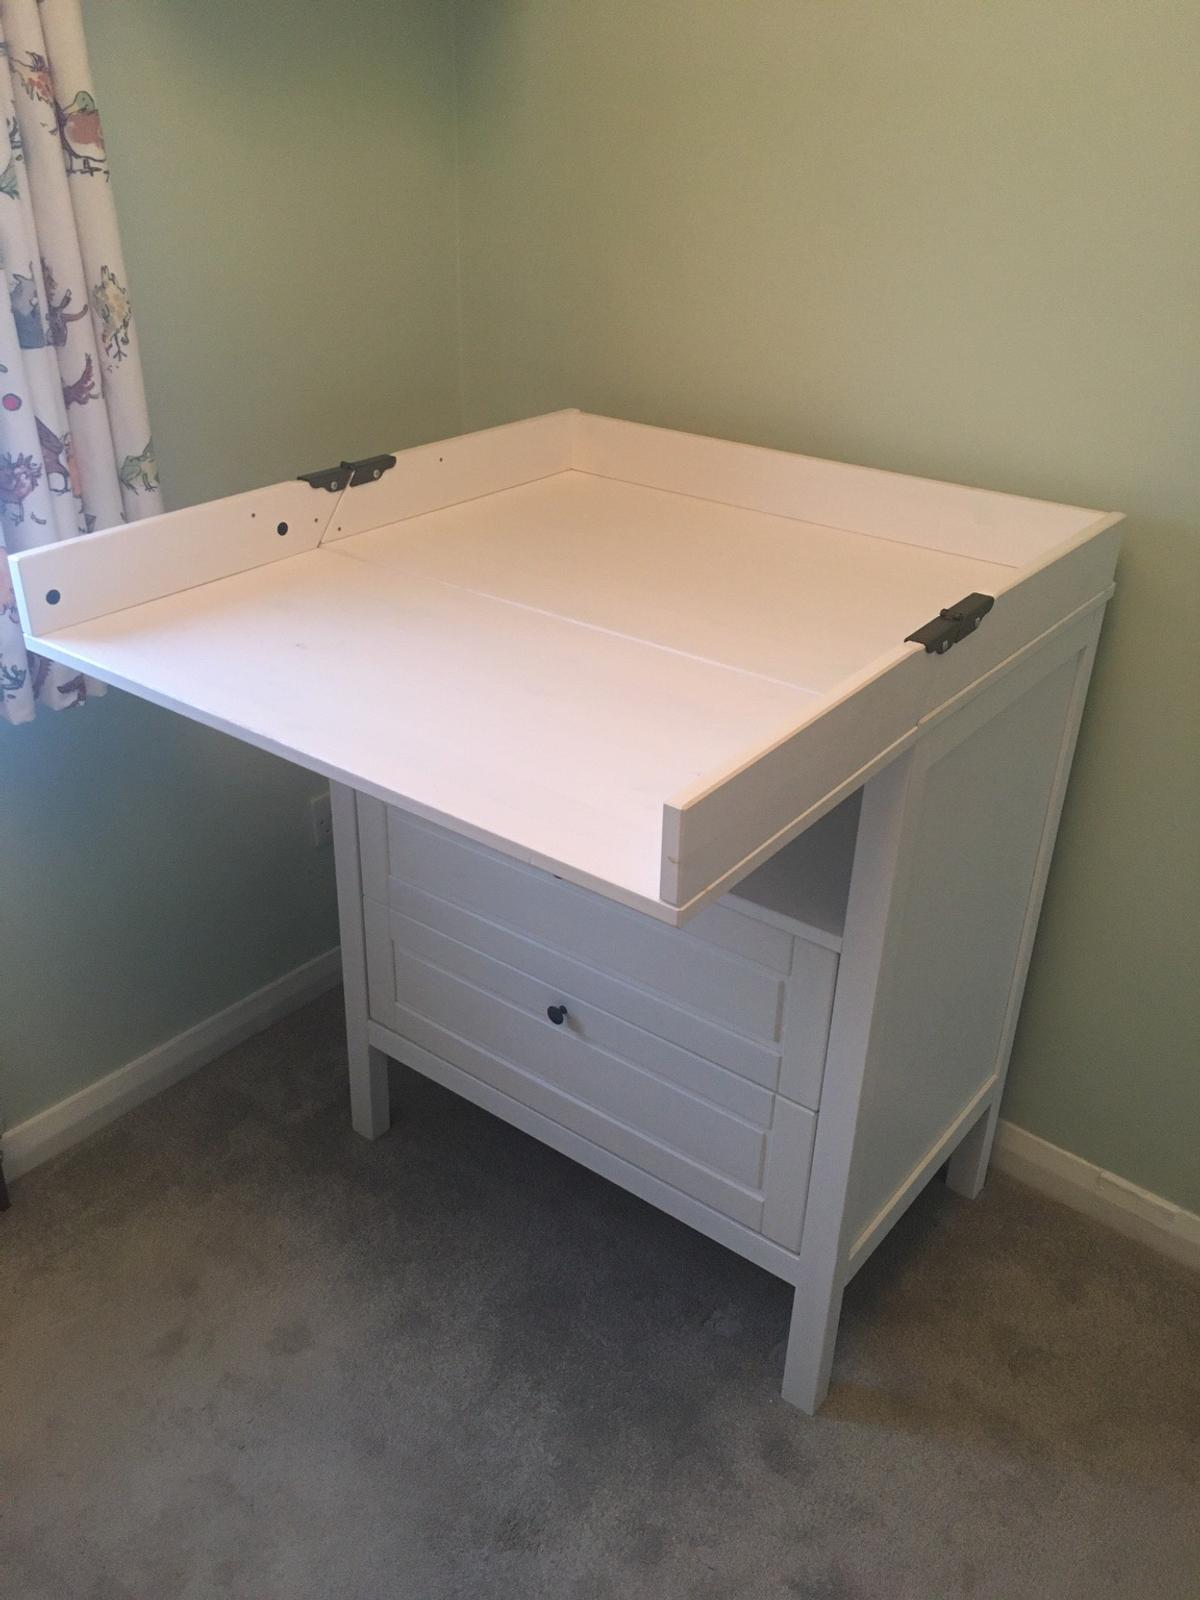 Ikea Sundvik baby change table. Good condition. There are a couple of areas of paint wear from useage (see photos). There are a few areas of discoloration but this is as was when bought new (quality IKEA paint job!) No damage. Drawers operate smoothly. Not subject to any nastiness. Has been well looked after and is from smoke and pet free home. Has been anti bac cleaned. 78cm wide, 50cm deep, 108cm tall (when top folded up). £140 RRP  Collection only please.